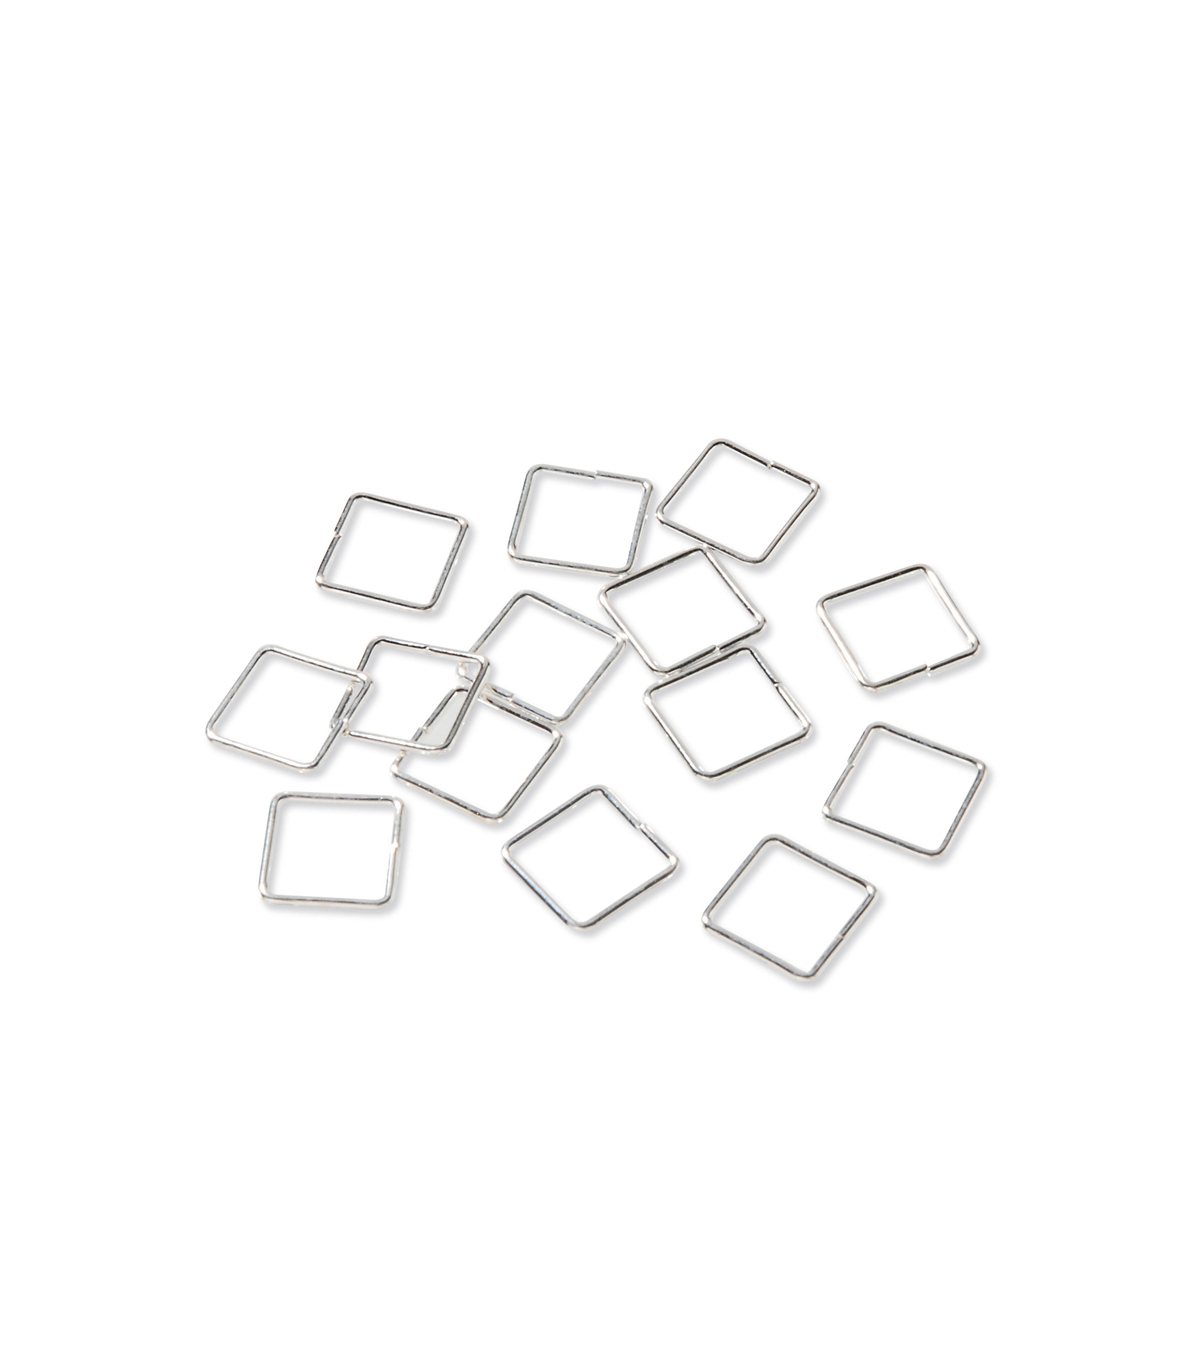 9mm Square Jump Rings for Jewelry Making, Bright Silver